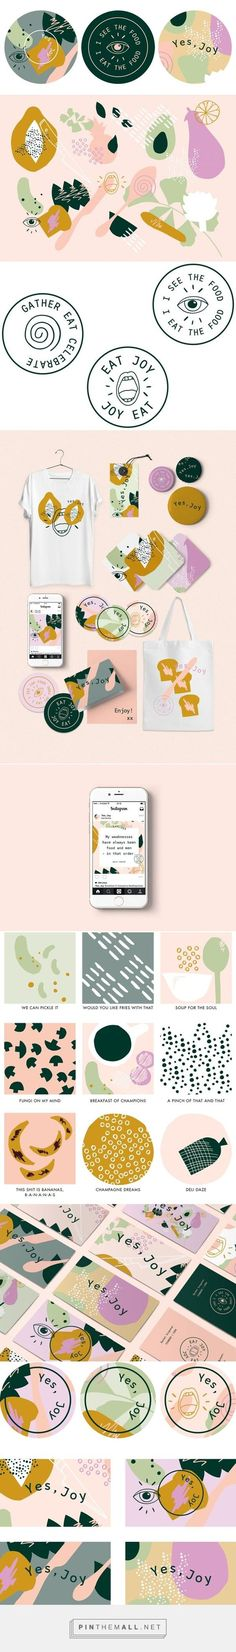 (19) Yes, Joy Food Blogger and Caterer Branding by Lila Theodoros